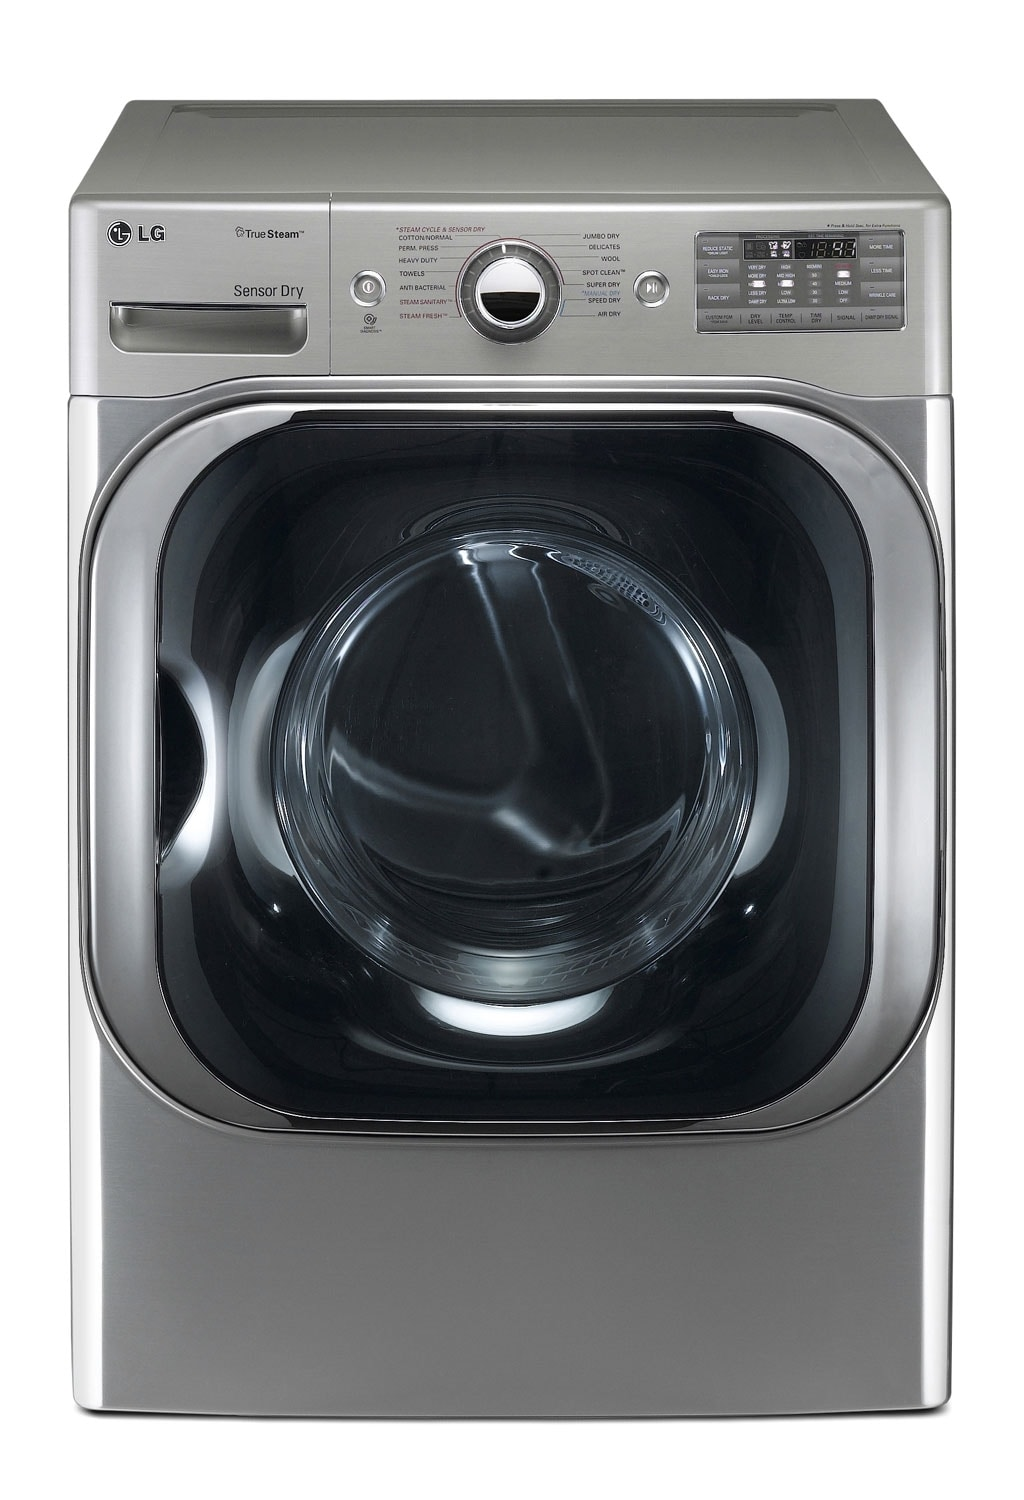 clothes dryers lg electric clothes dryer rh clothesdryersnadenta blogspot  com Washer Dryer in One Unit Washer and Dryer in One Machine